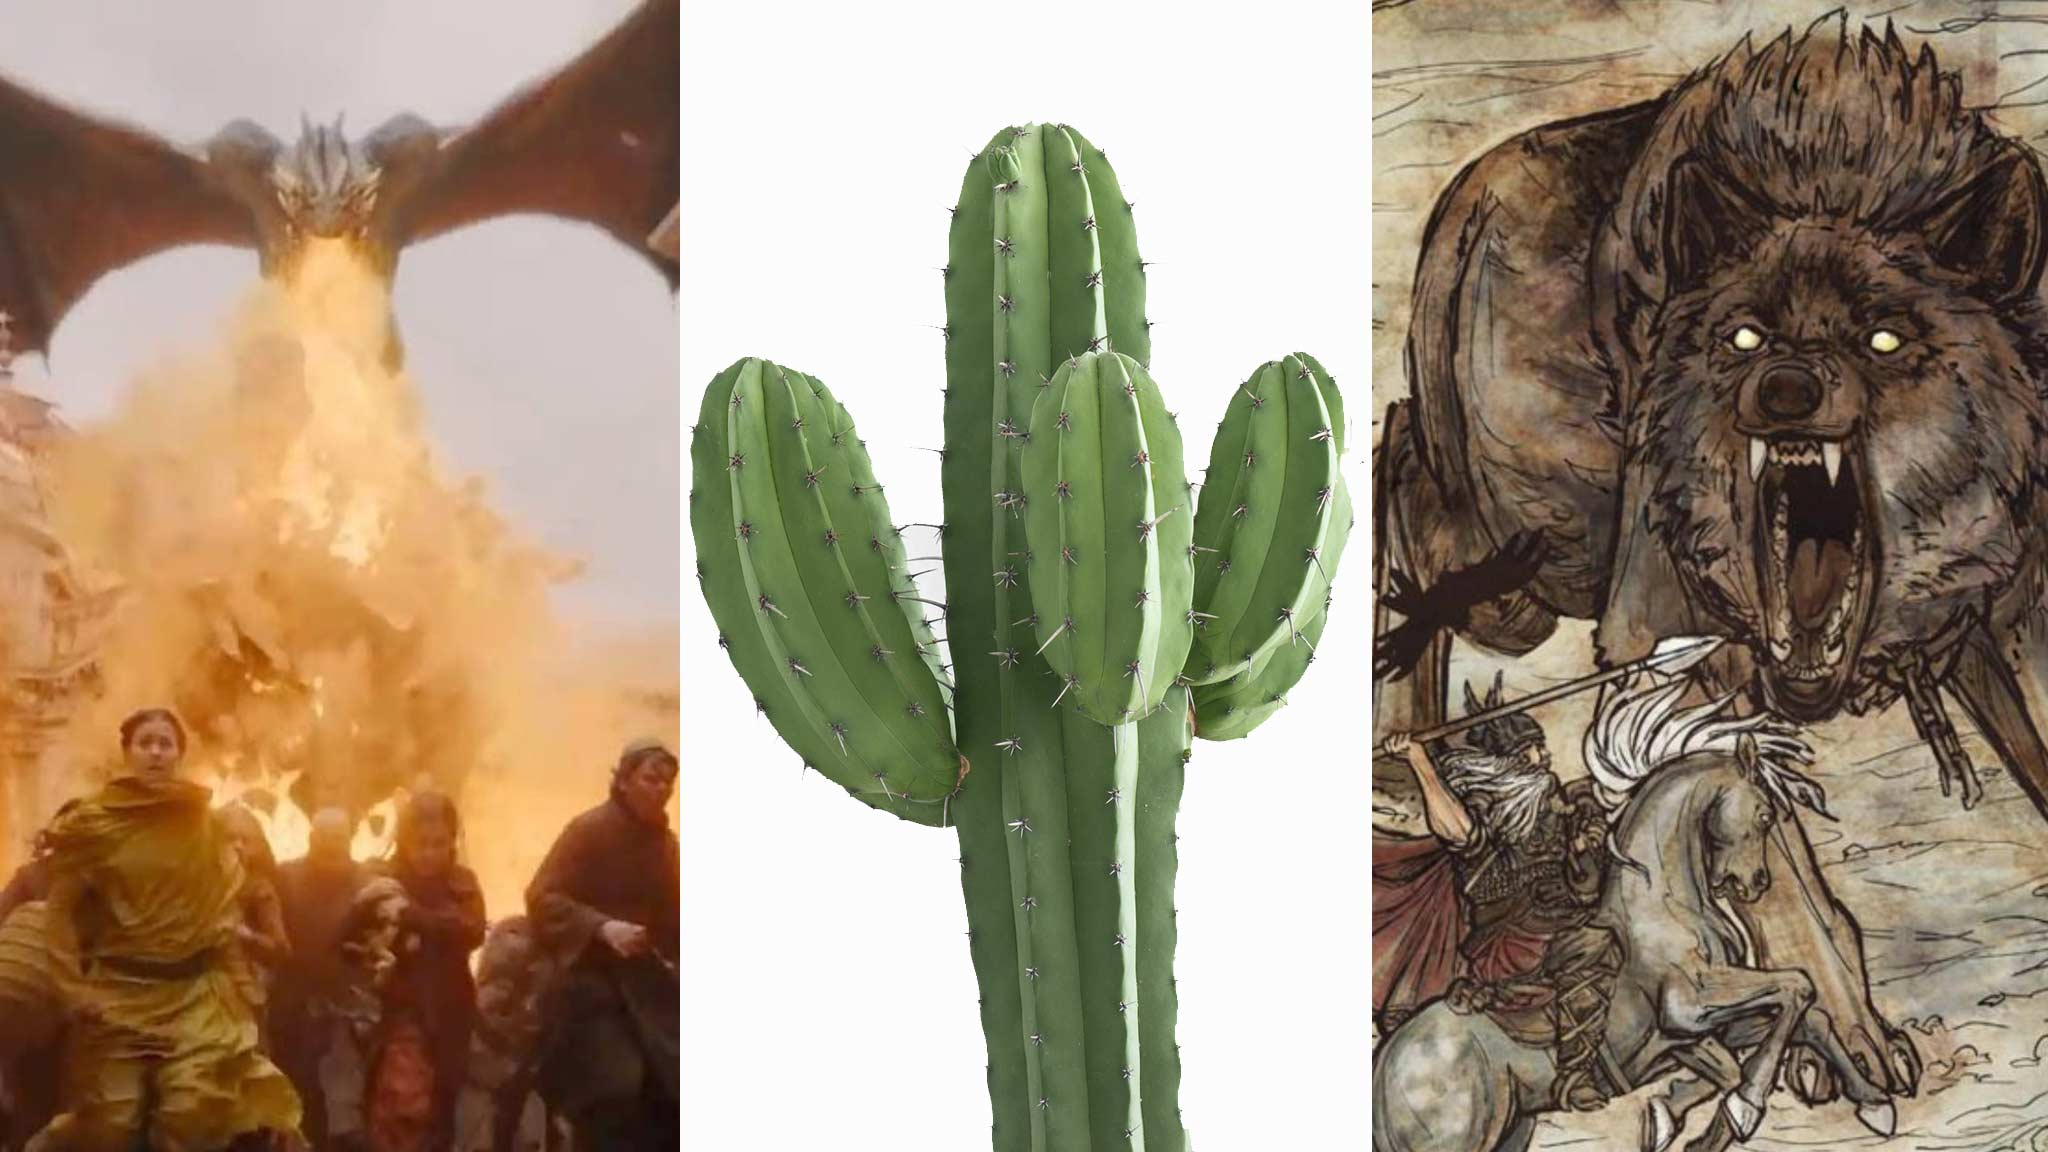 Images of a dragon breathing fire, a cactus, and Odin fighting a giant wolf